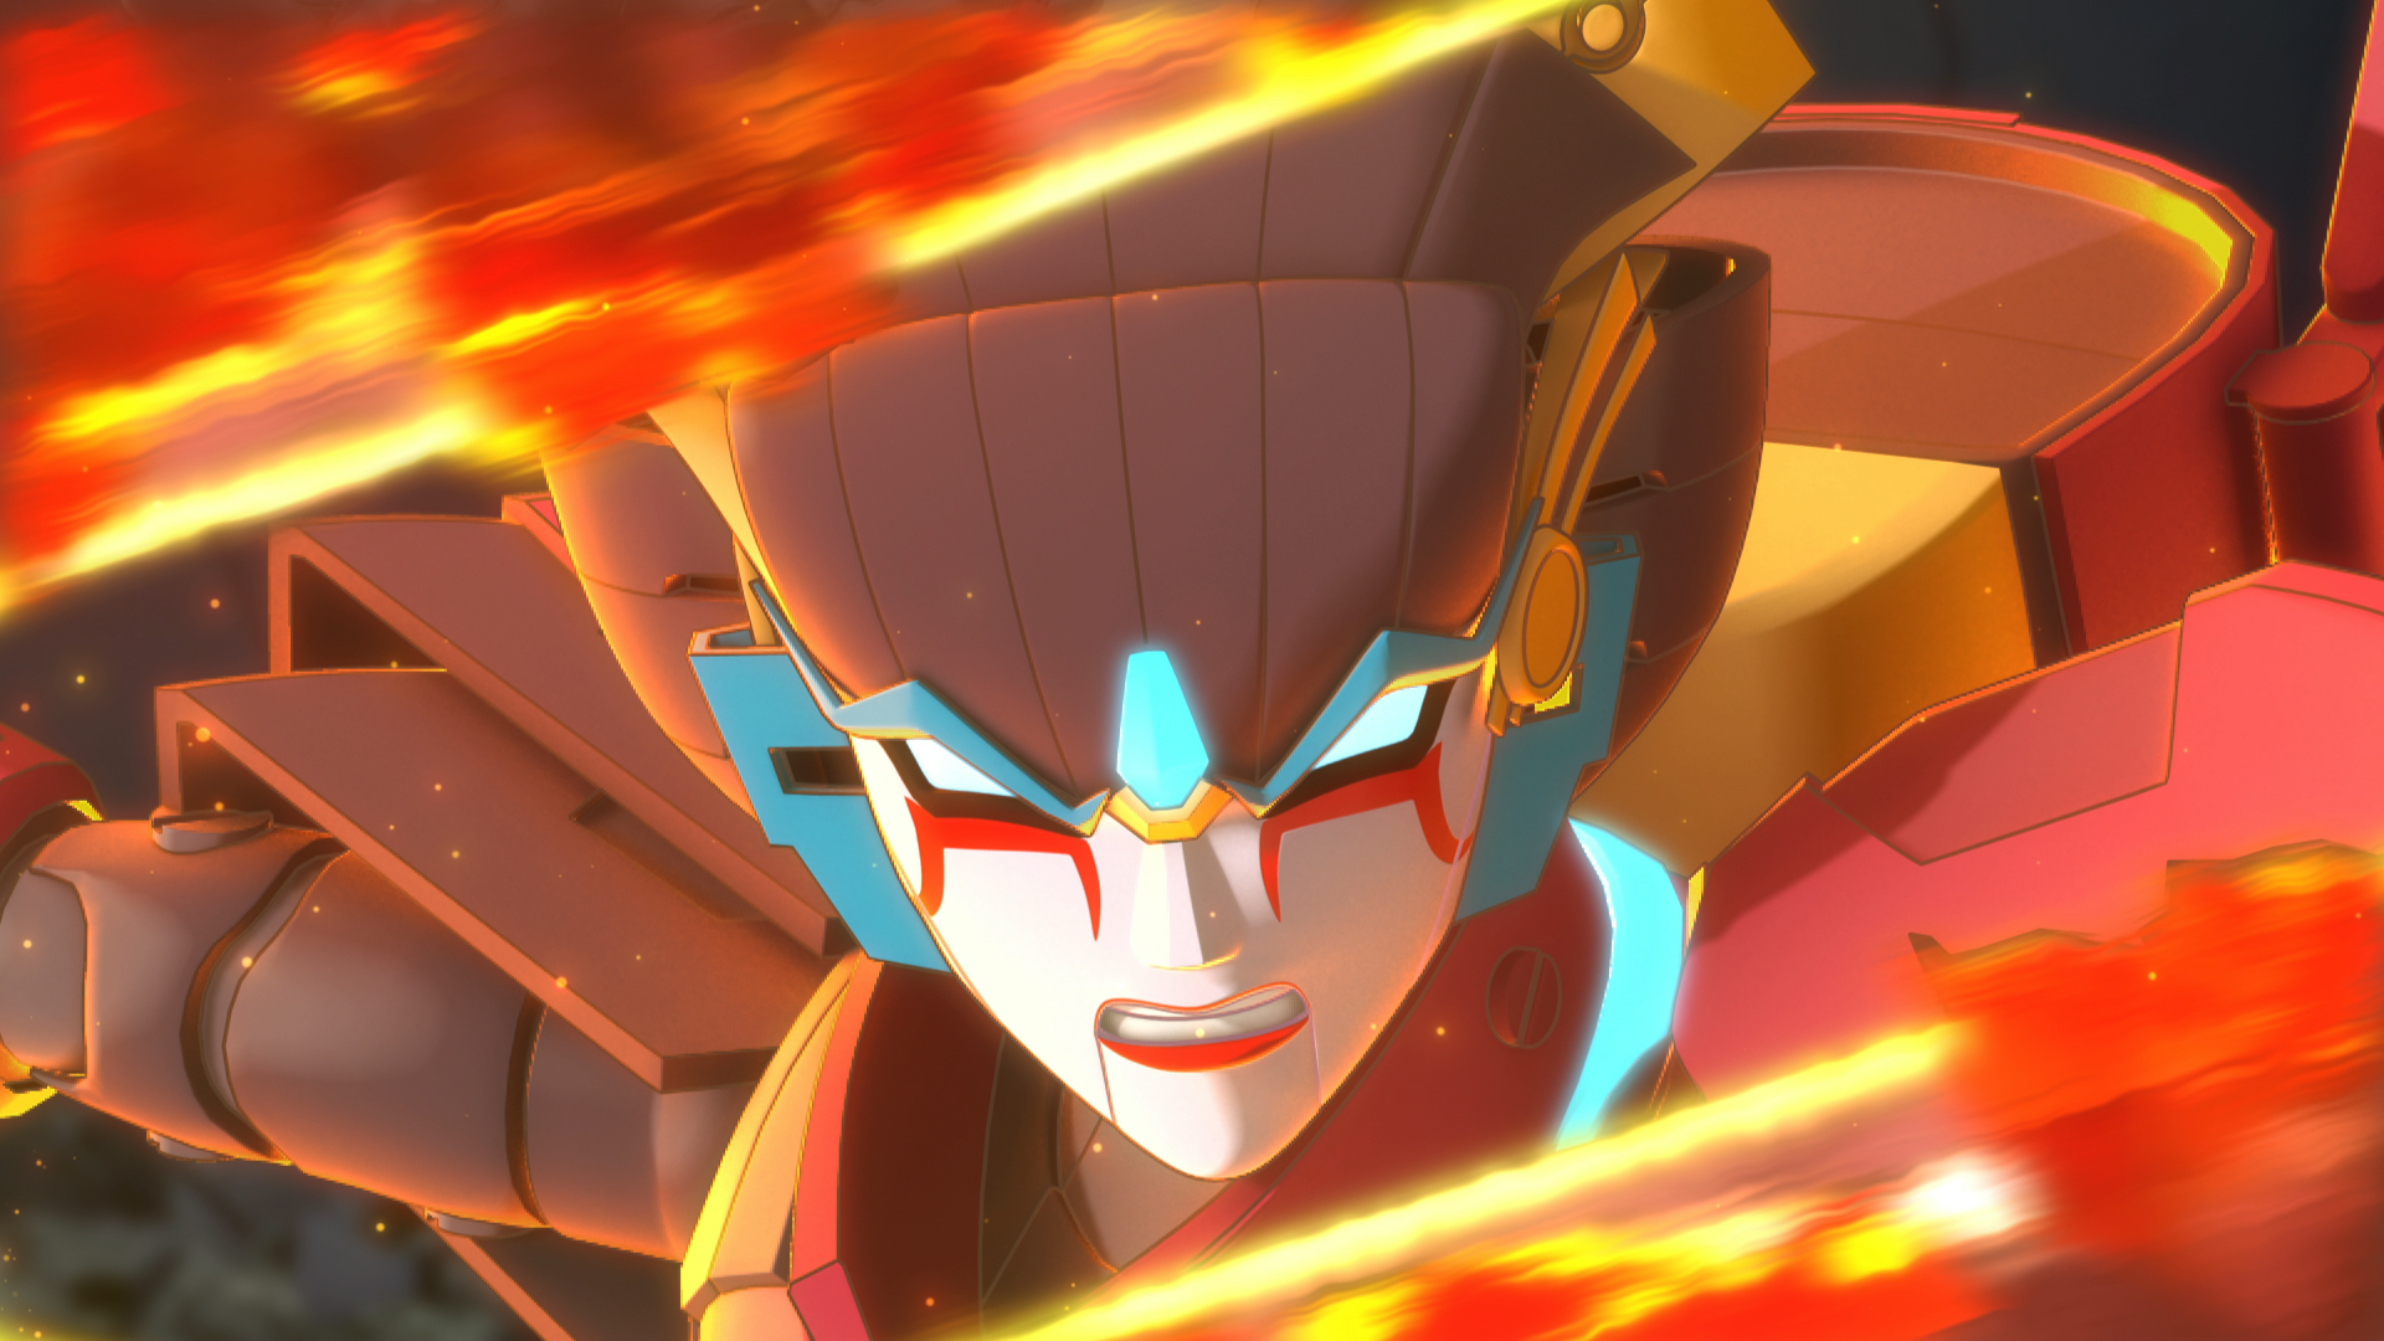 Transformers Combiner Wars Windblade closeup Transformers: Prime Wars Trilogy Announced